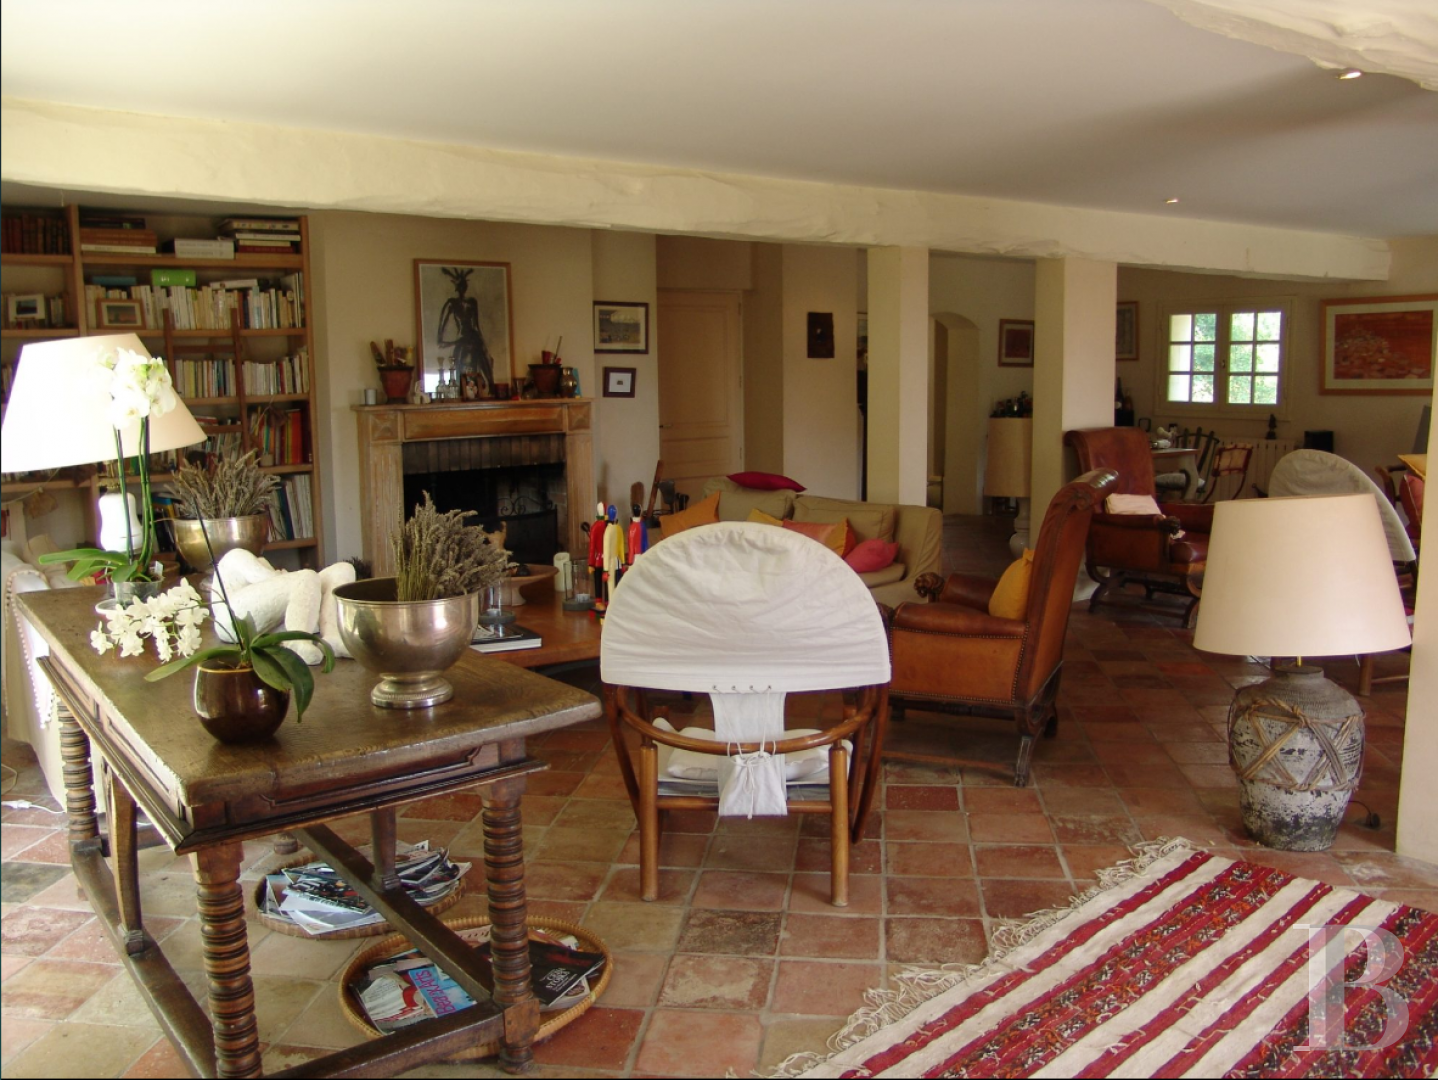 property for sale France midi pyrenees residences farms - 6 zoom